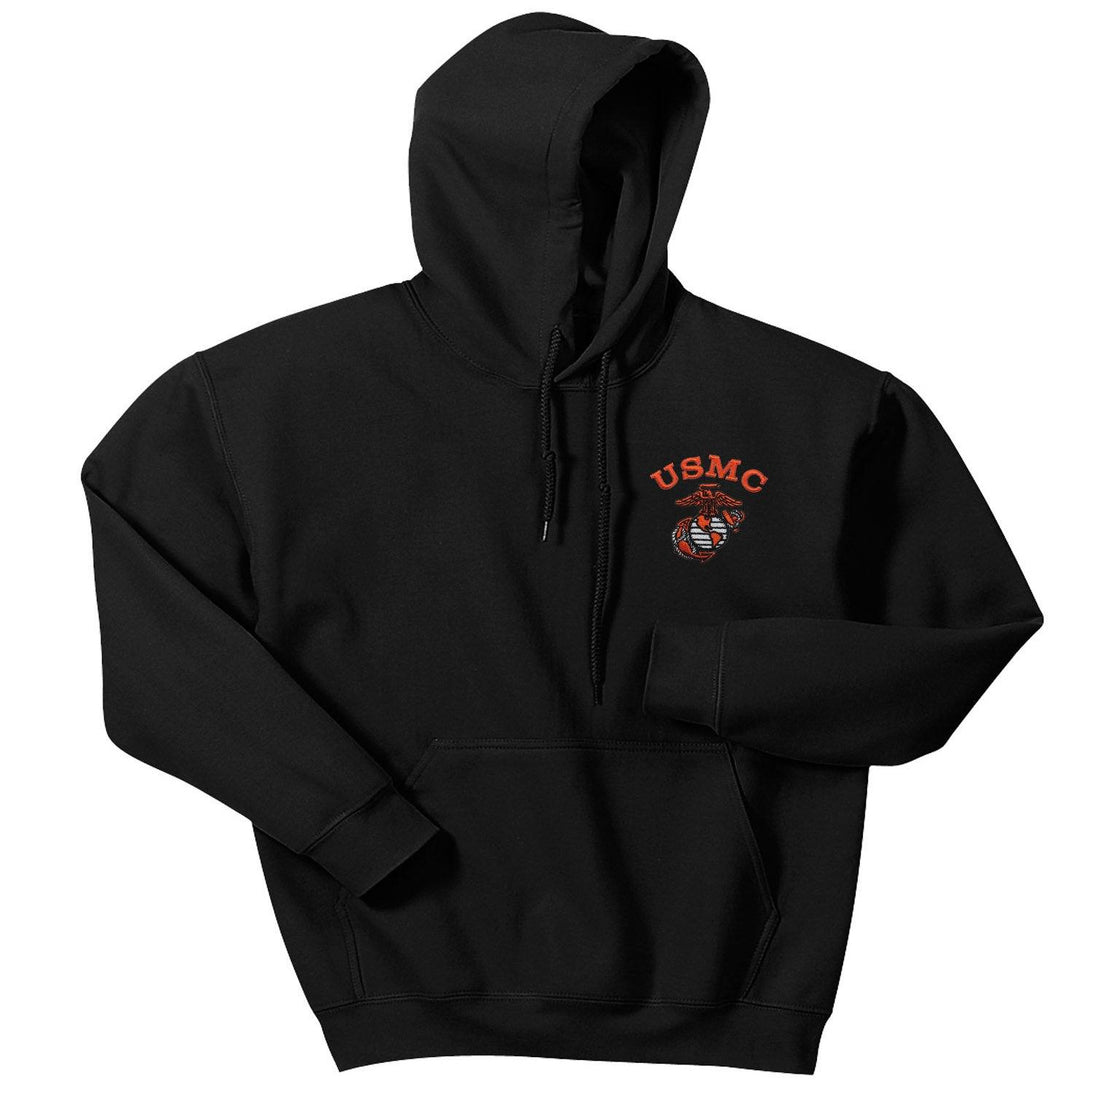 Orange USMC Embroidered Black Hooded Sweatshirt